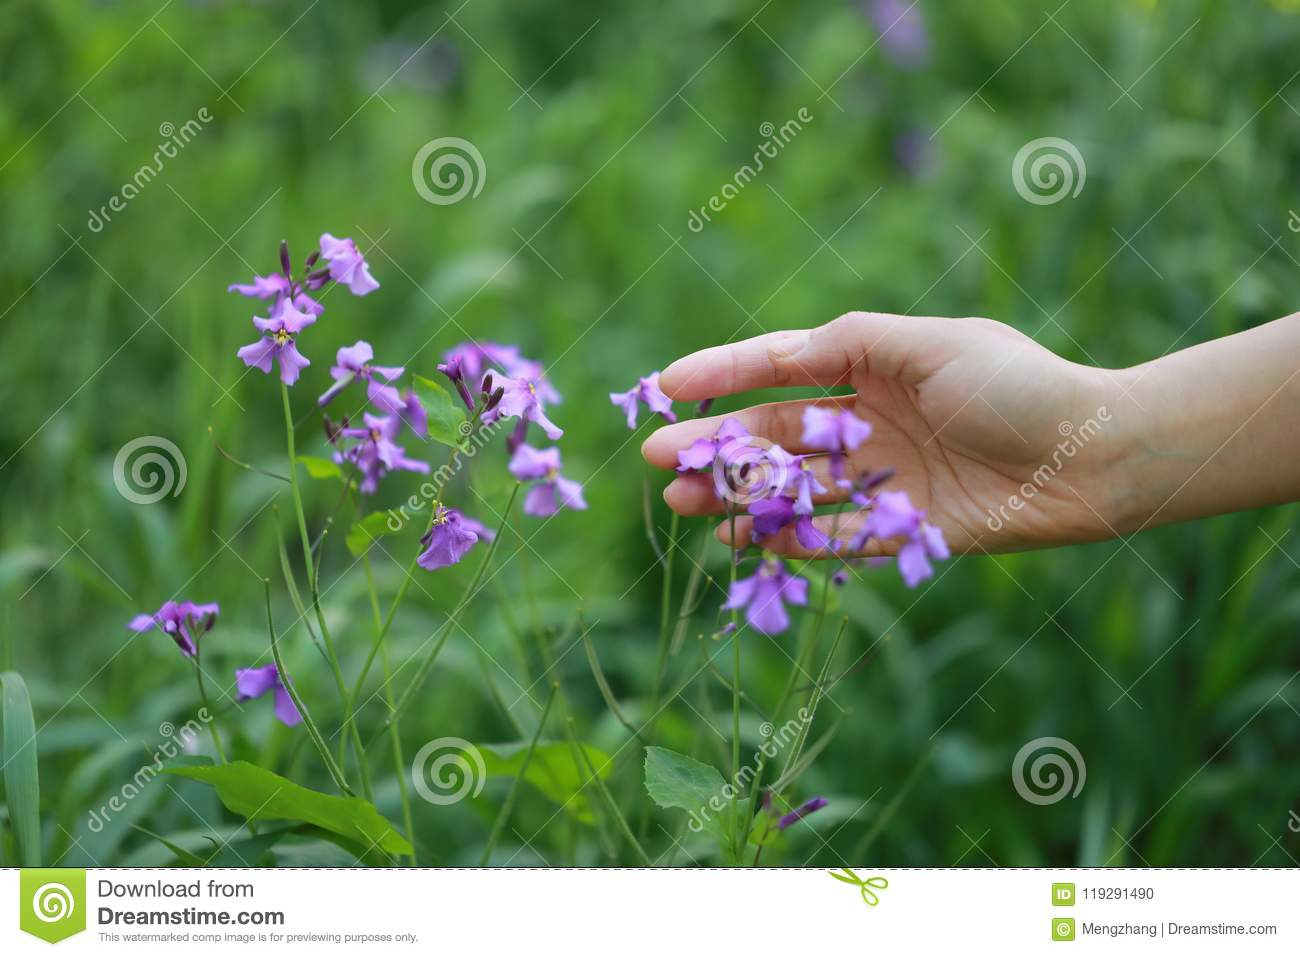 A hand touch grass and purple flower in summer spring park outdoor at a sunny day hope peace concept